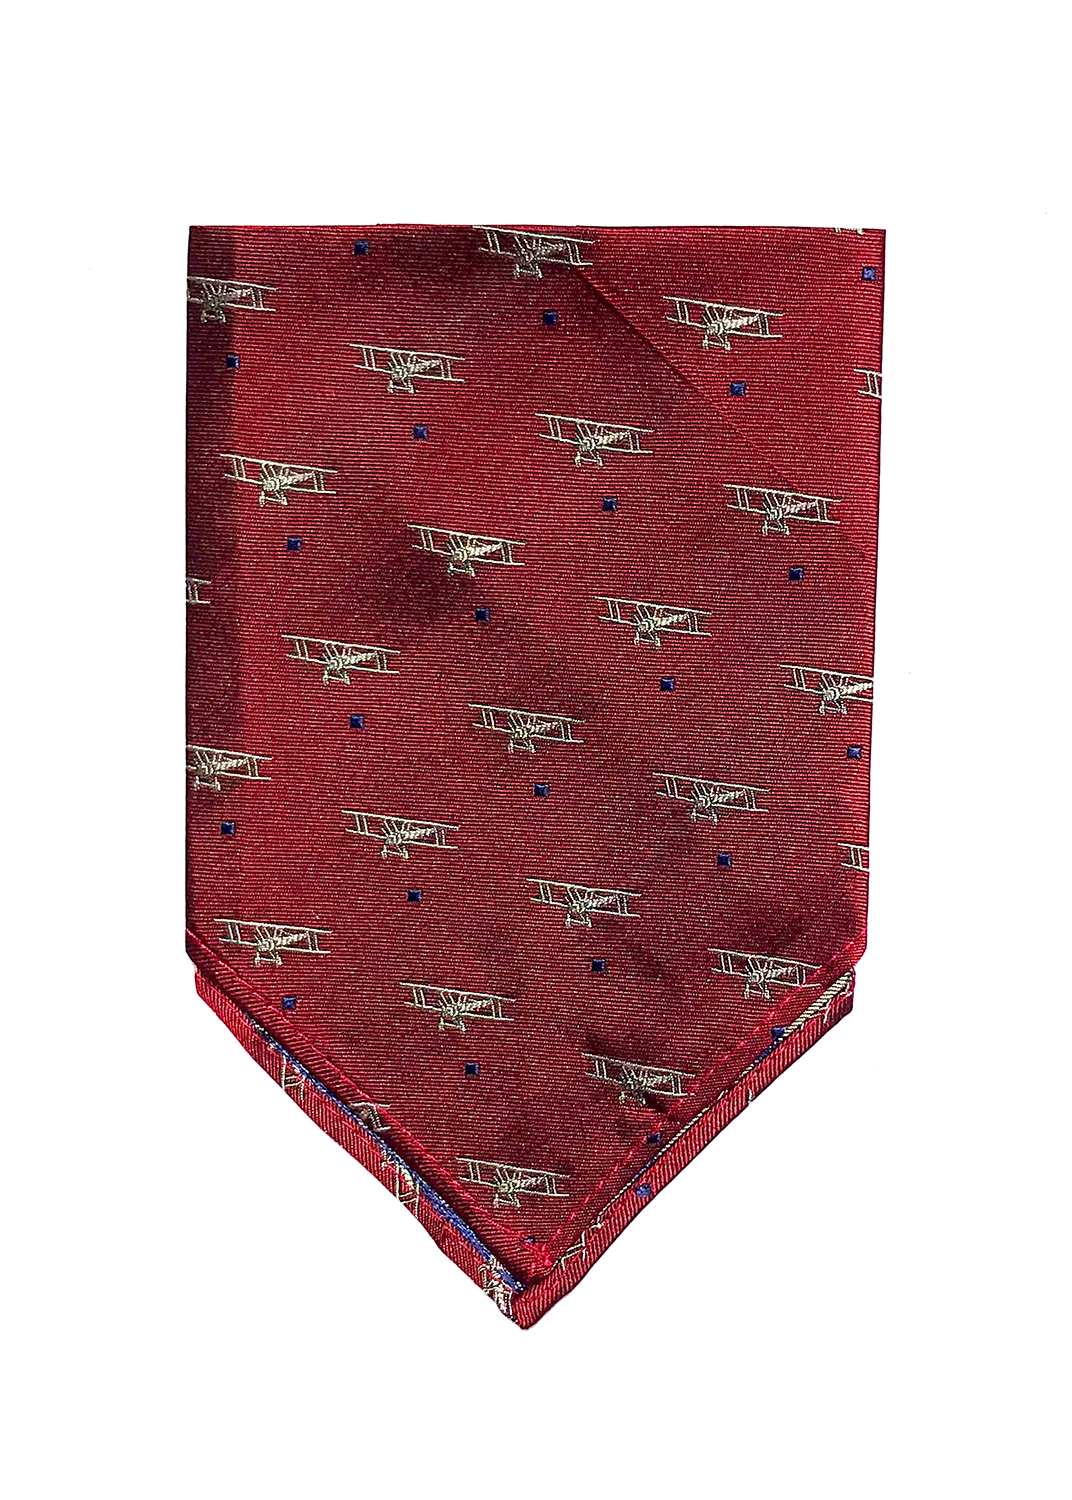 doppeldecker design aviation aircraft airplane pocket square biplane